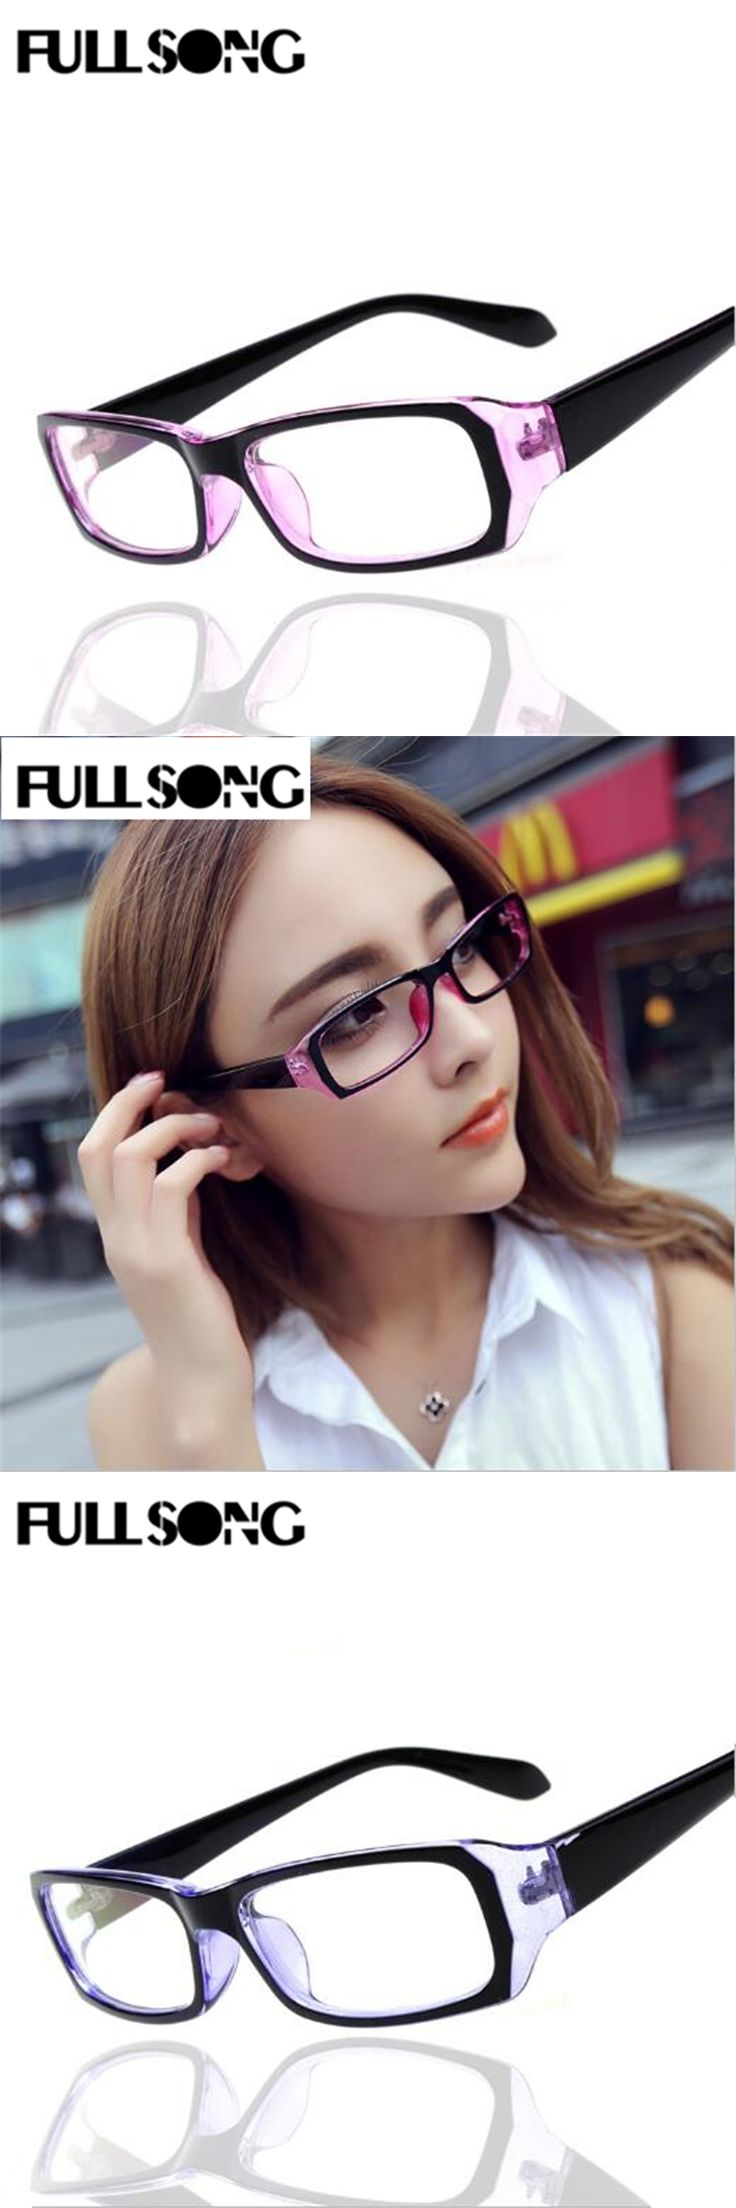 FULLSONG Stylish Practical Glasses for Men Women Anti-radiation Reading Glasses Anti-fatigue Computers Glasses Goggles D63054